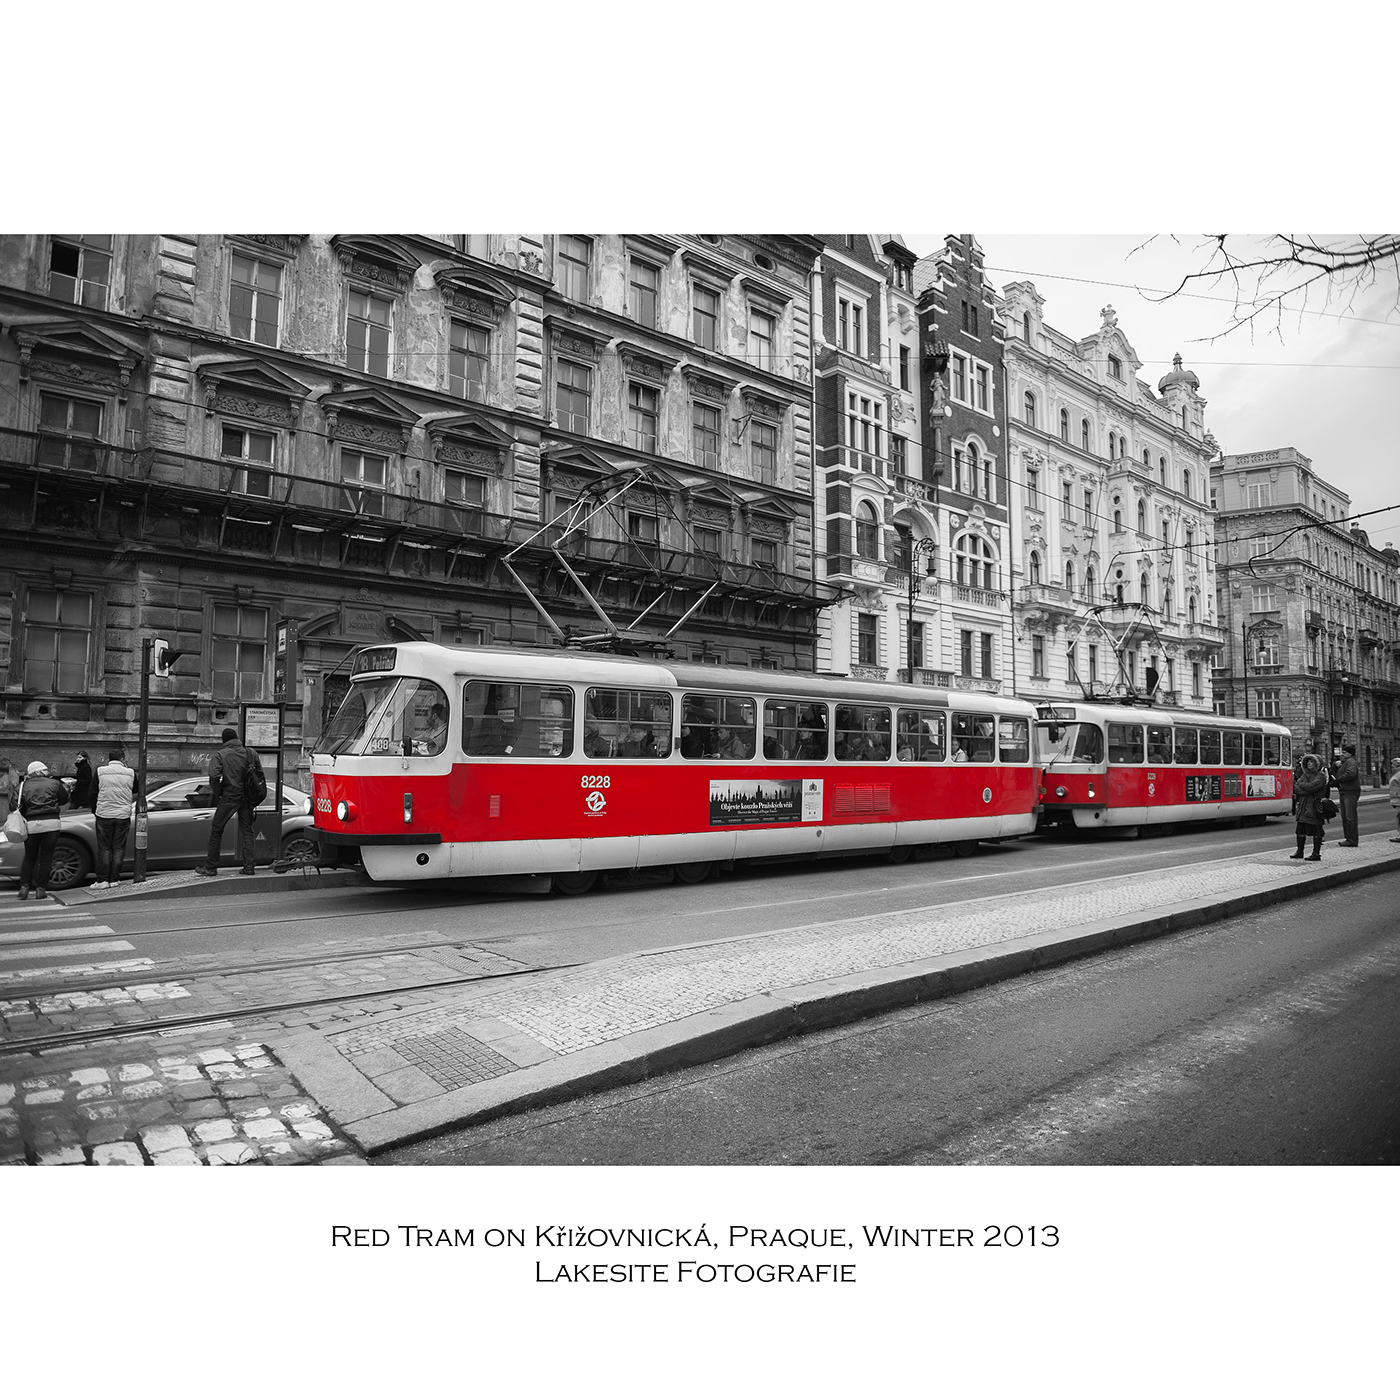 Red Trams in Praque